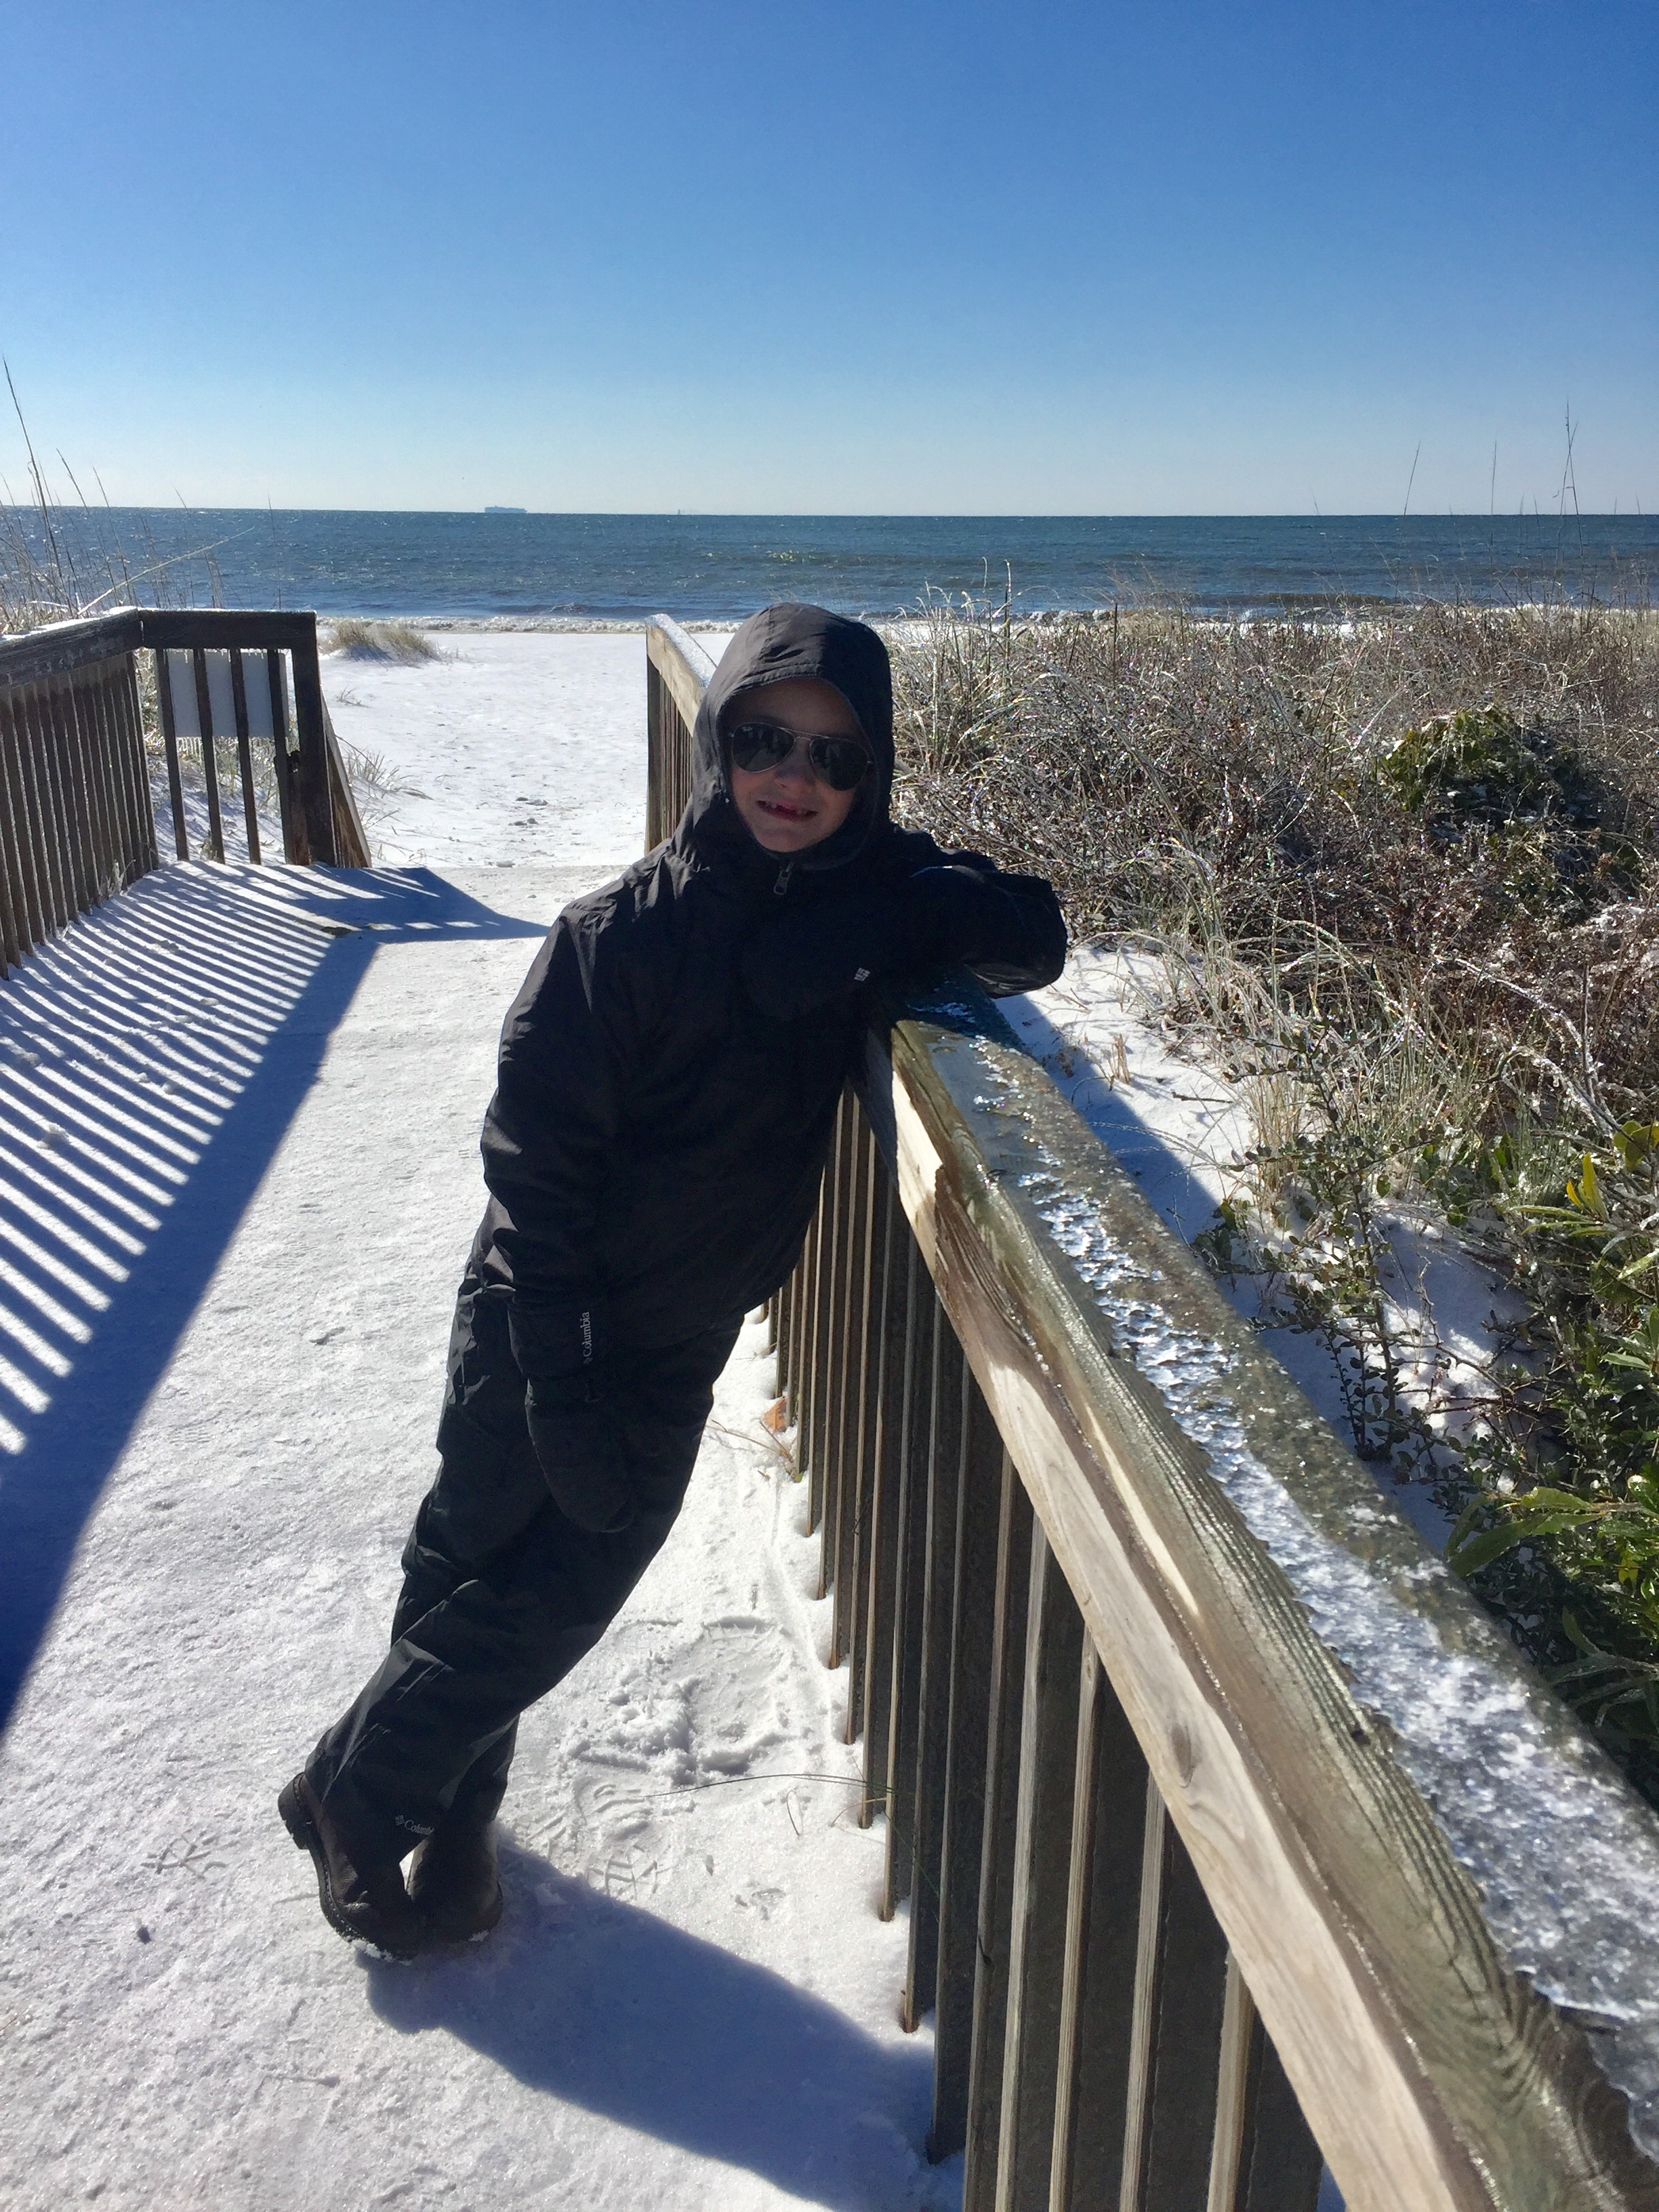 <div class='meta'><div class='origin-logo' data-origin='none'></div><span class='caption-text' data-credit='Michelle Mena - ABC11 Eyewitness'>Max Mena, 6, enjoys snow at the beach at Caswell on Oak Island!</span></div>